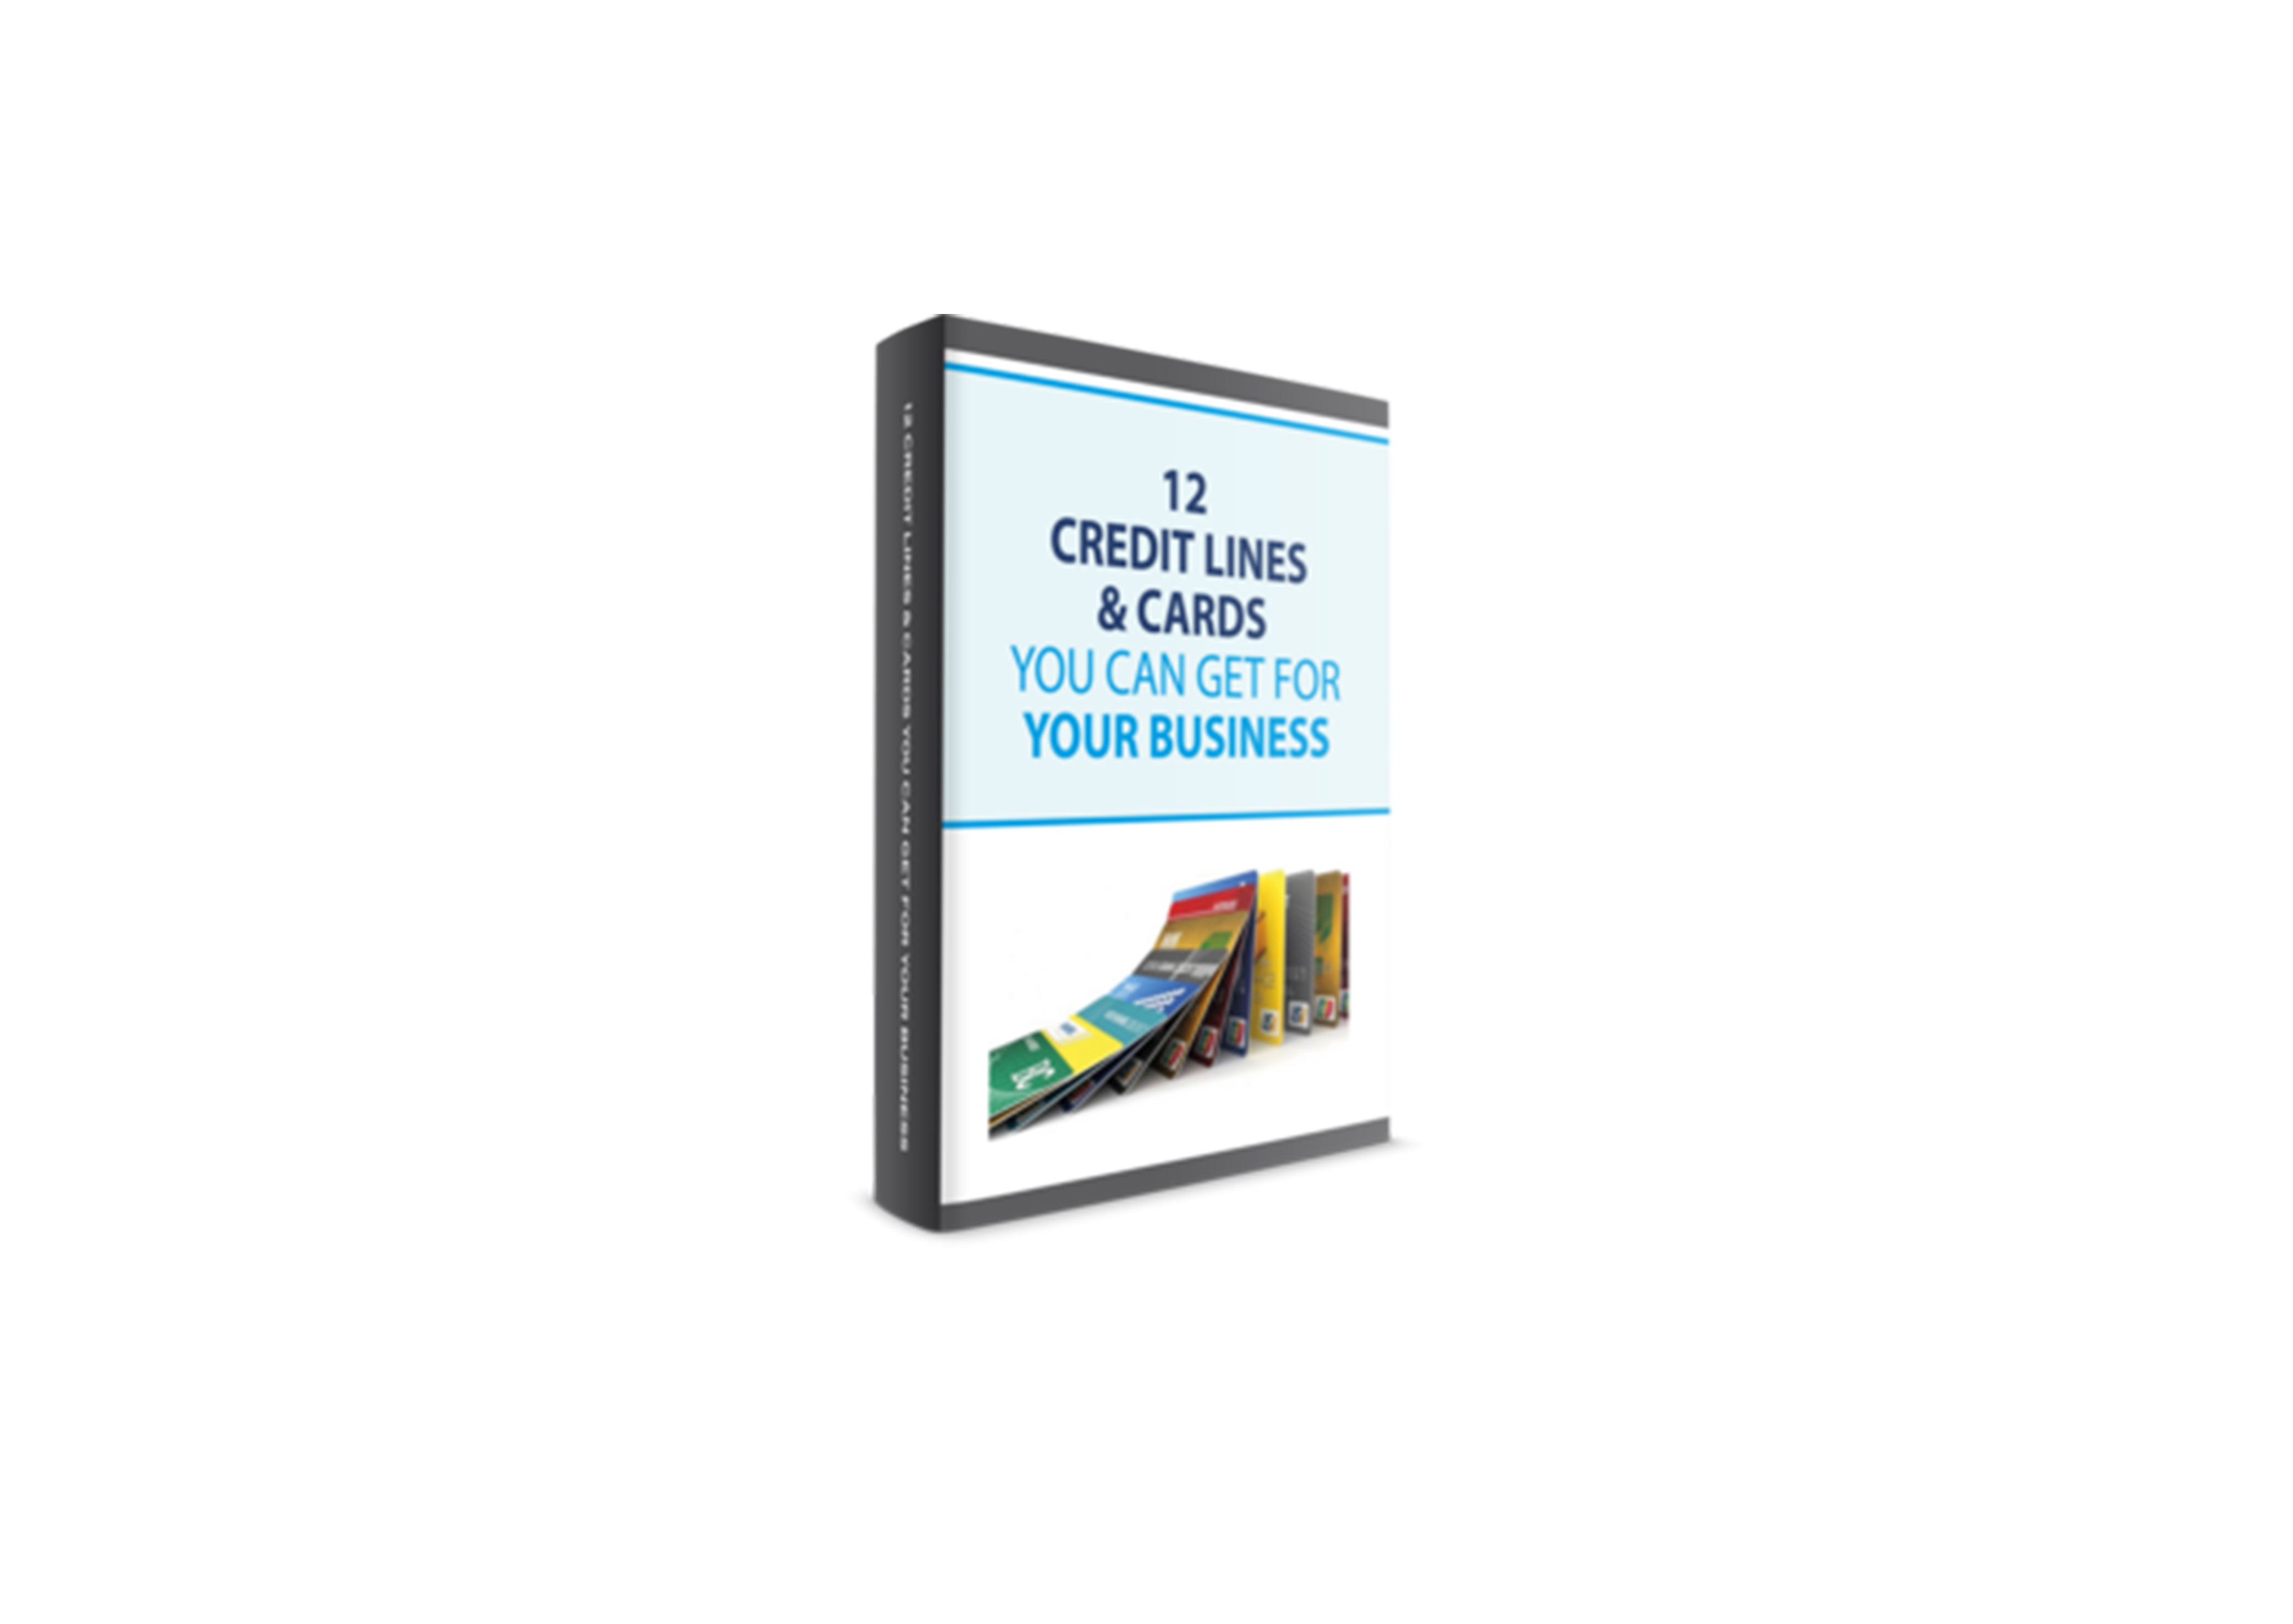 12 Credit Lines & Cards